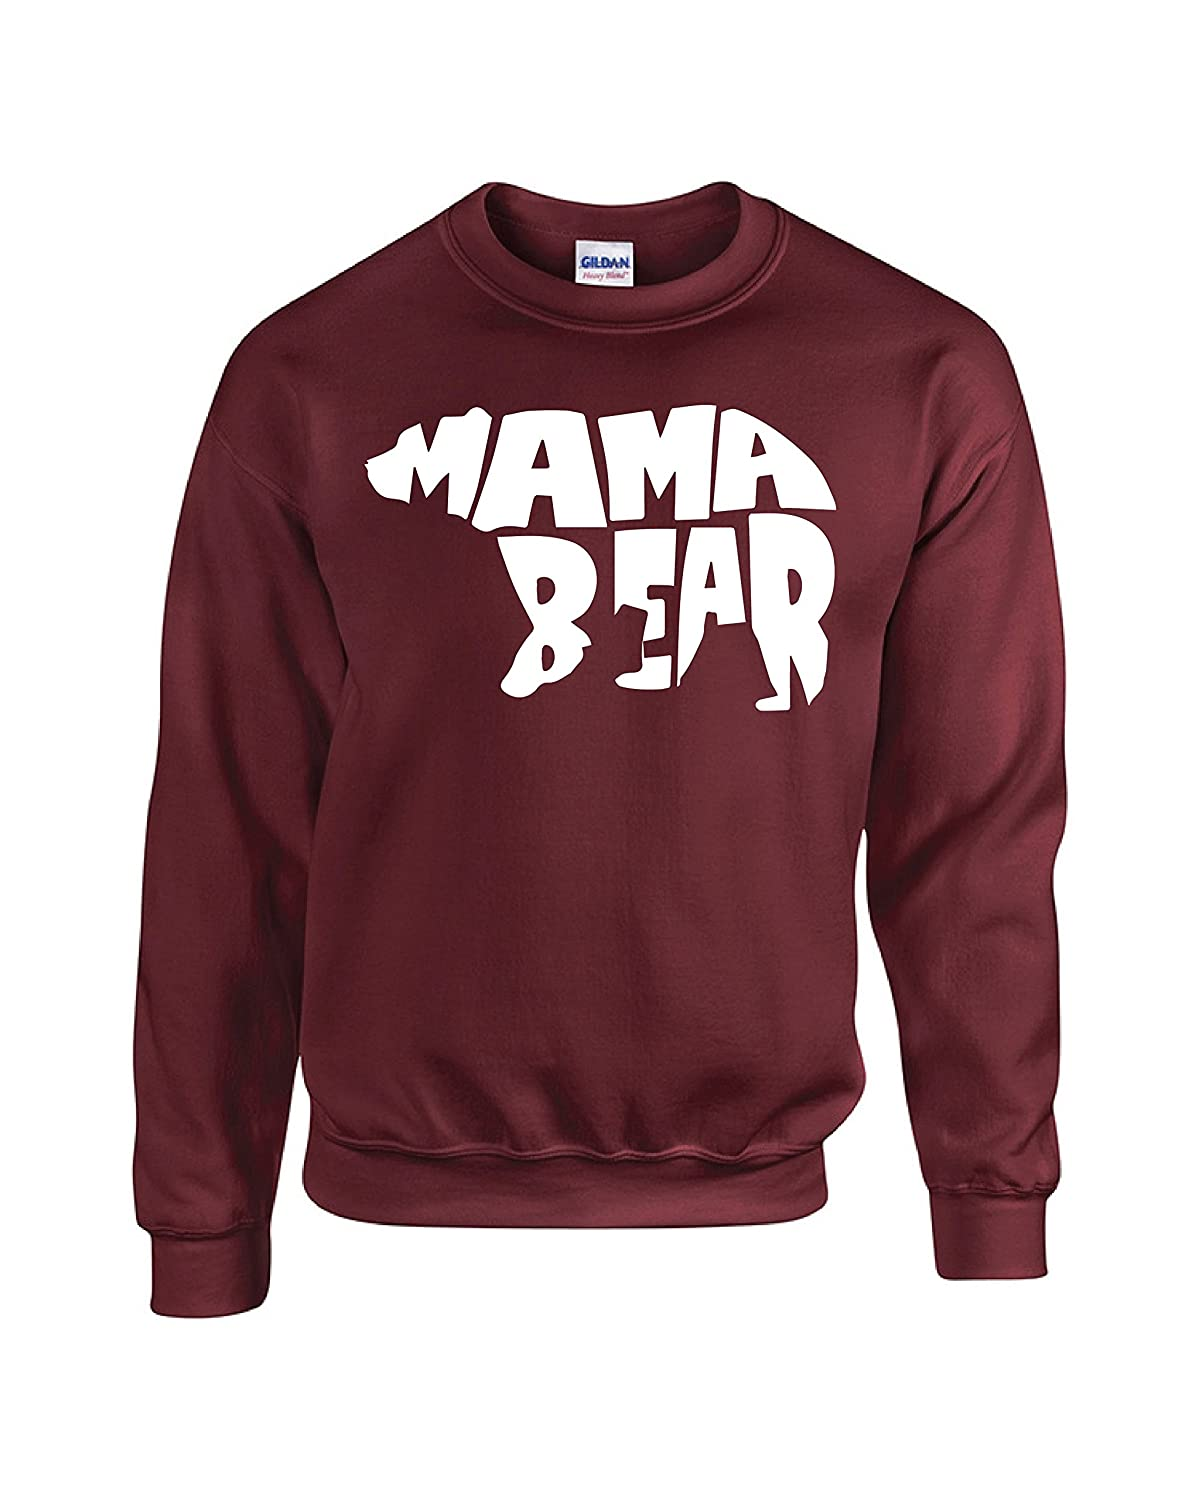 Mama Bear Couples Crewneck Sweater by Outlook Designs MAMABEARSWEATER1